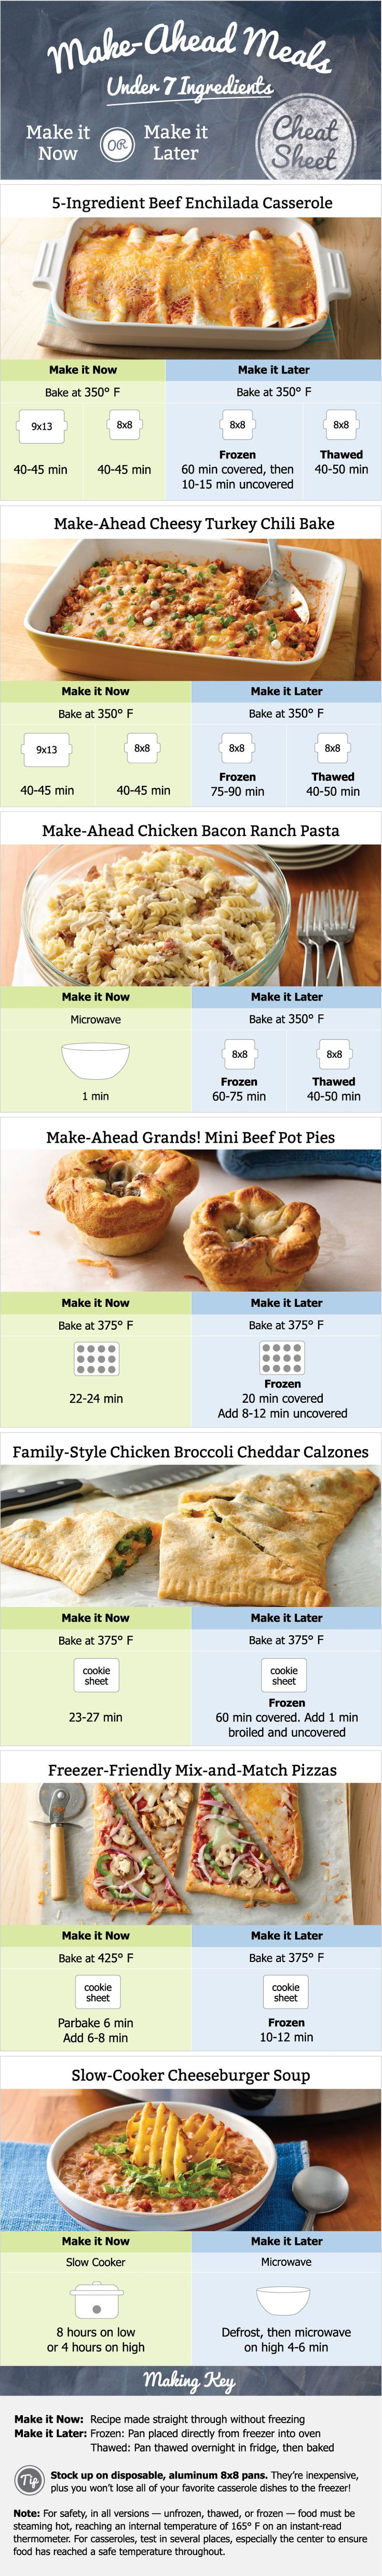 Make Ahead Meals with 7 ingredients or less. Make tonight and freeze for later! #freezerfriendly